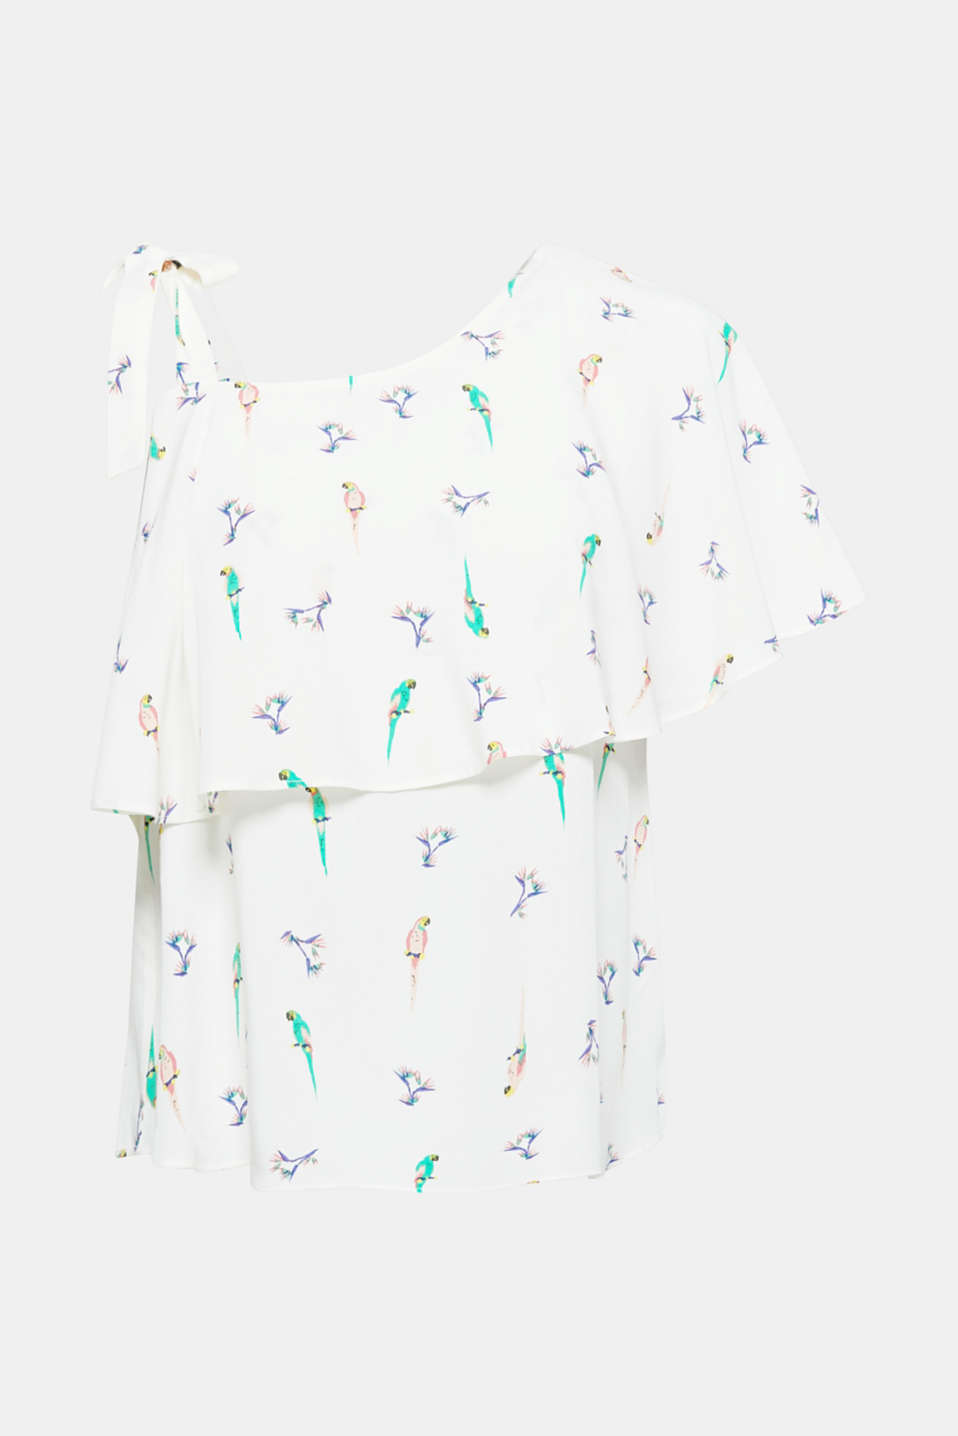 The asymmetric, one-shoulder neckline trimmed with a softly draped frill makes this dainty blouse a sensual, stylish separate. The colourful parrot print rounds off the summery design perfectly.